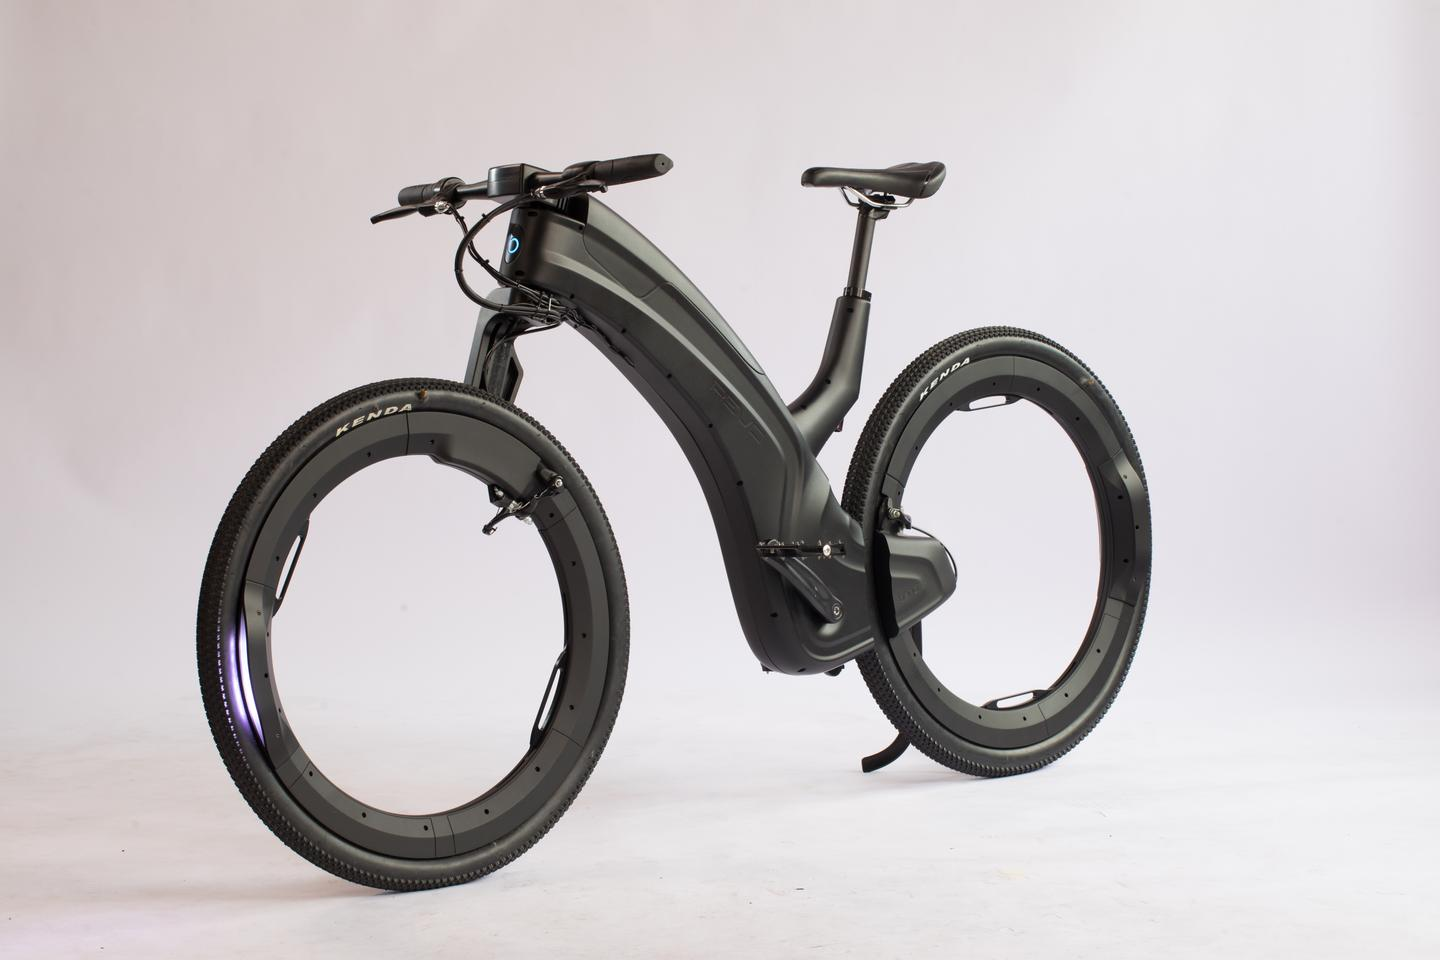 Hubless Reevo ebike pushes the limits of engineering ... and credulity